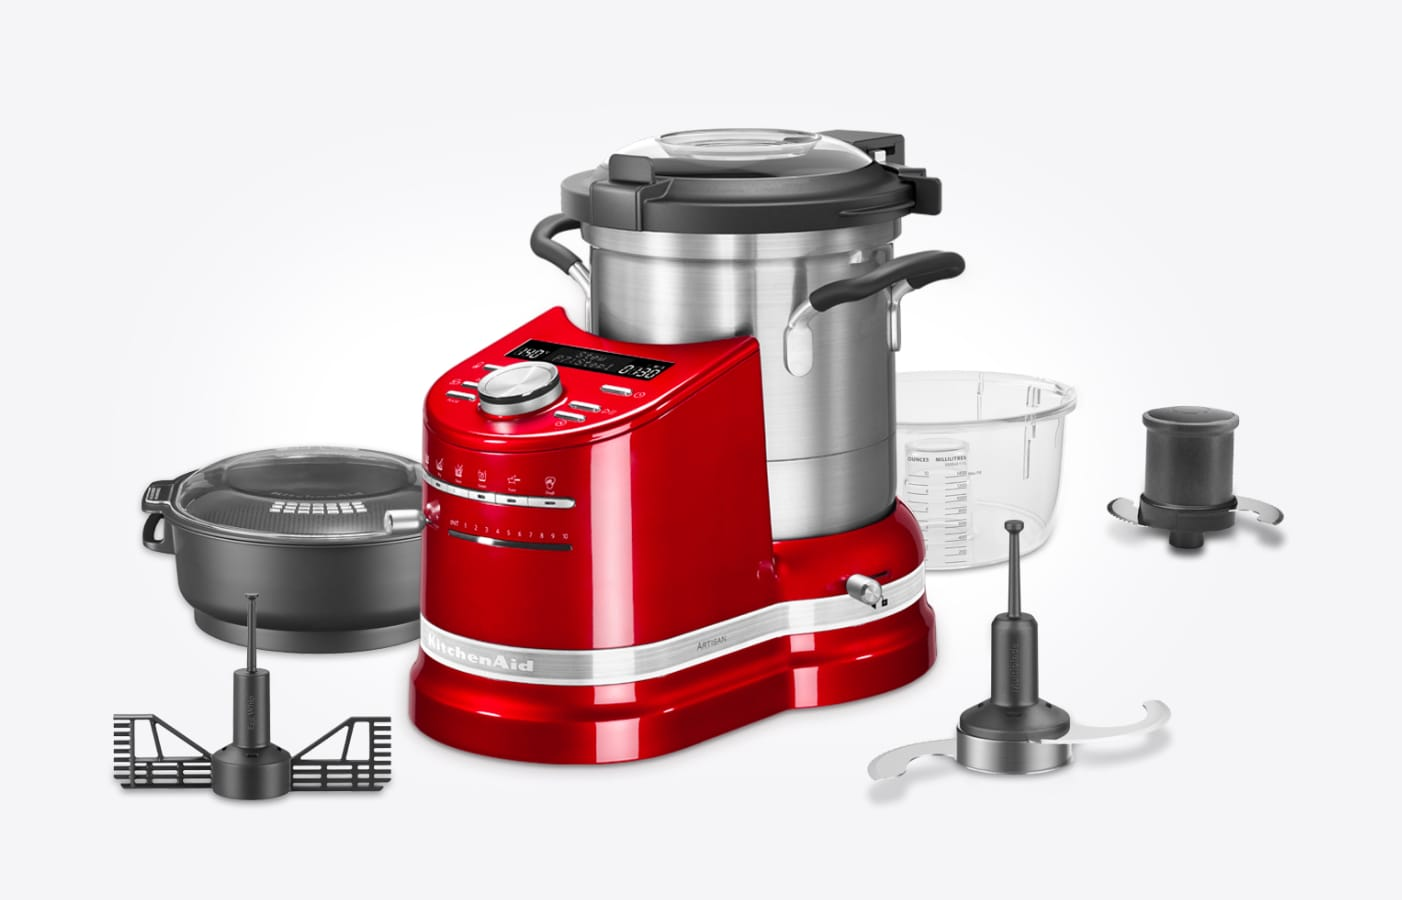 Kitchenaid Küchenmaschine Bei Rewe Violet Evergarden Sincerely Lyrics